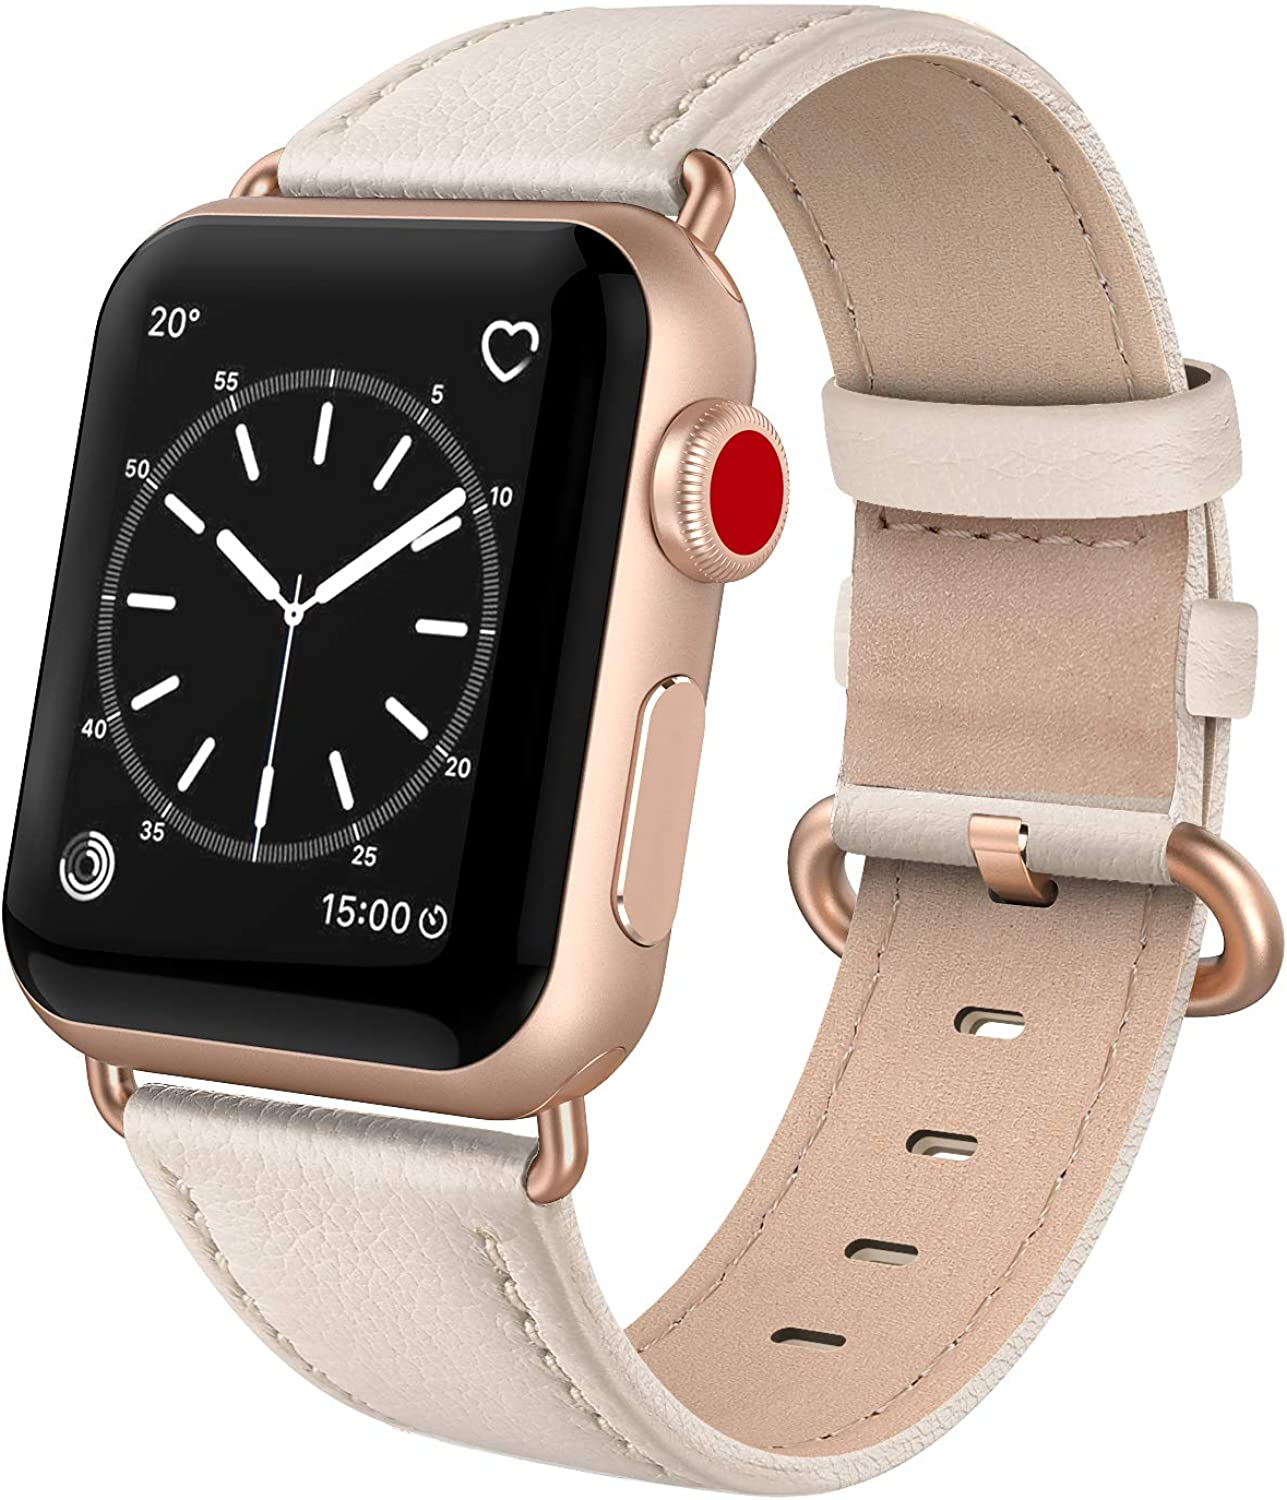 SWEES Leather Band Compatible for iWatch 38mm 40mm, Genuine Leather Replacement Strap Rose Gold Buckle Compatible iWatch Series 6 5 4 3 2 1, Sports & Edition Women